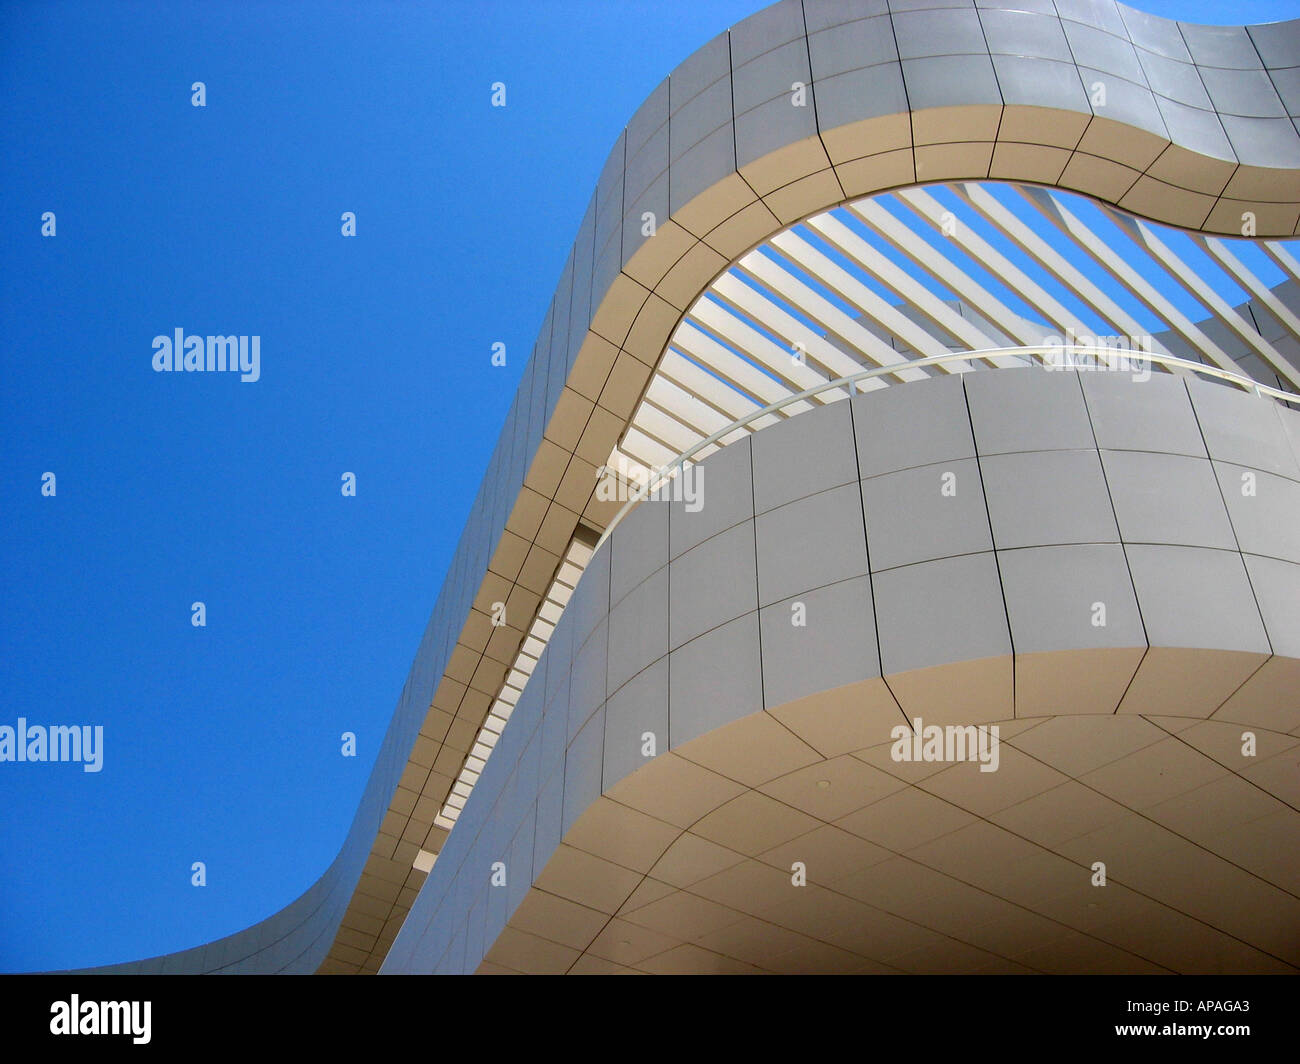 The Getty Center , J Paul Getty Museum, California Los Angeles, USA - Stock Image